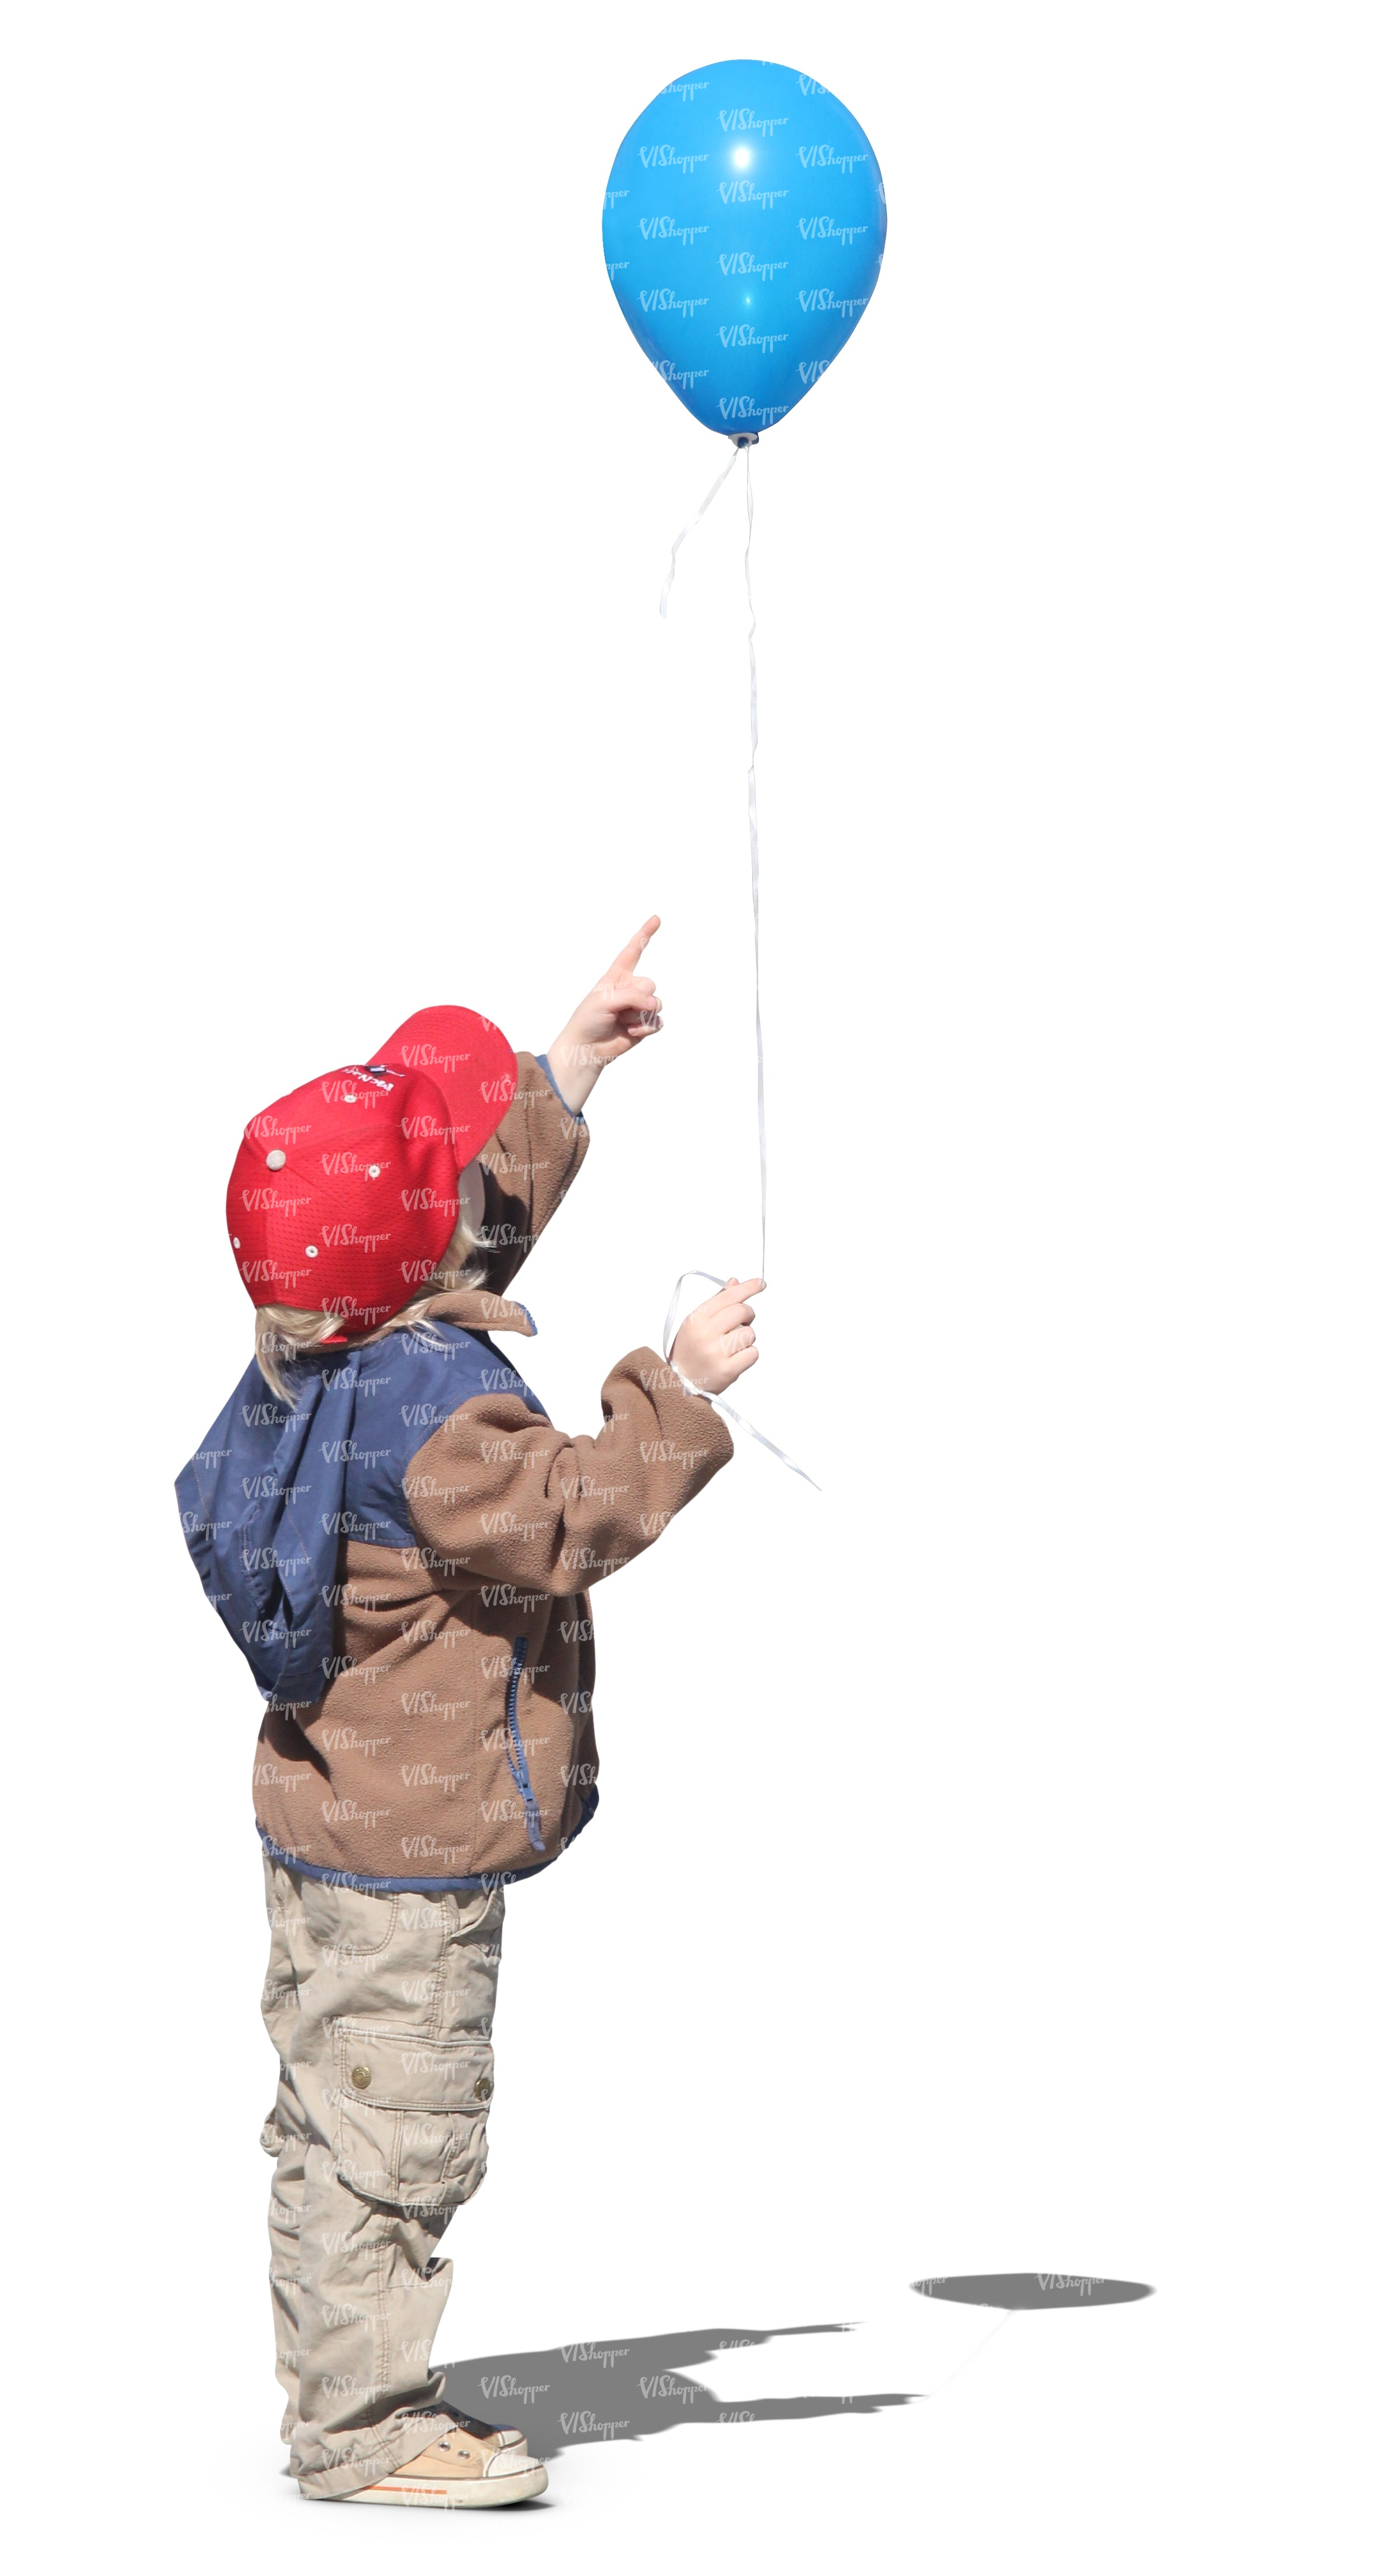 young boy with a red cap and a balloon cut out people